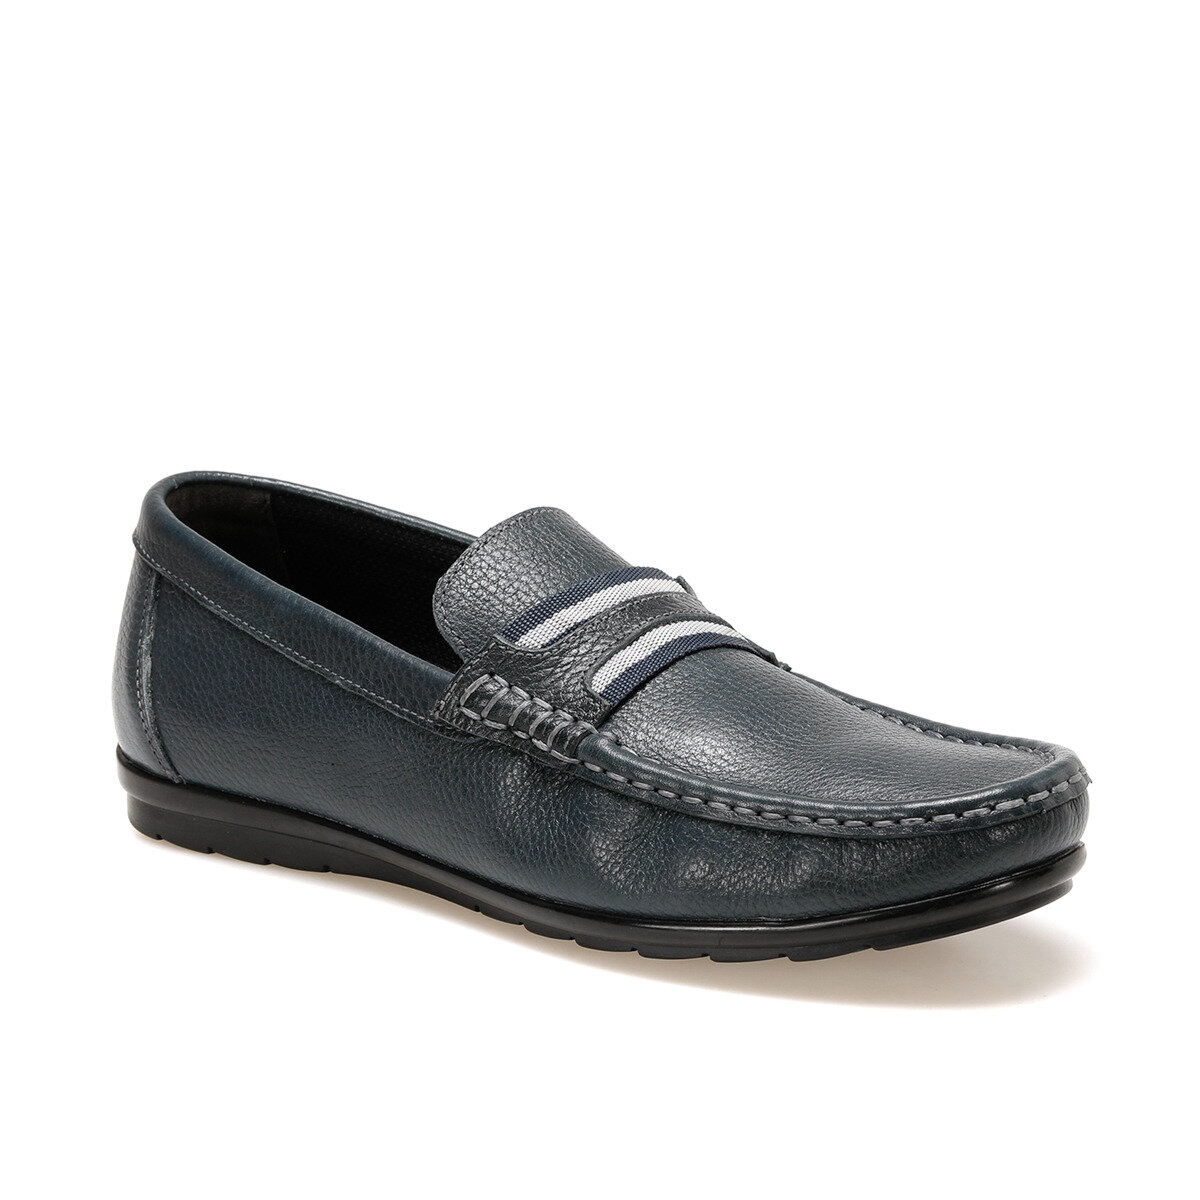 FLO LF1 Navy Blue Men 'S Loafer Shoes Oxide